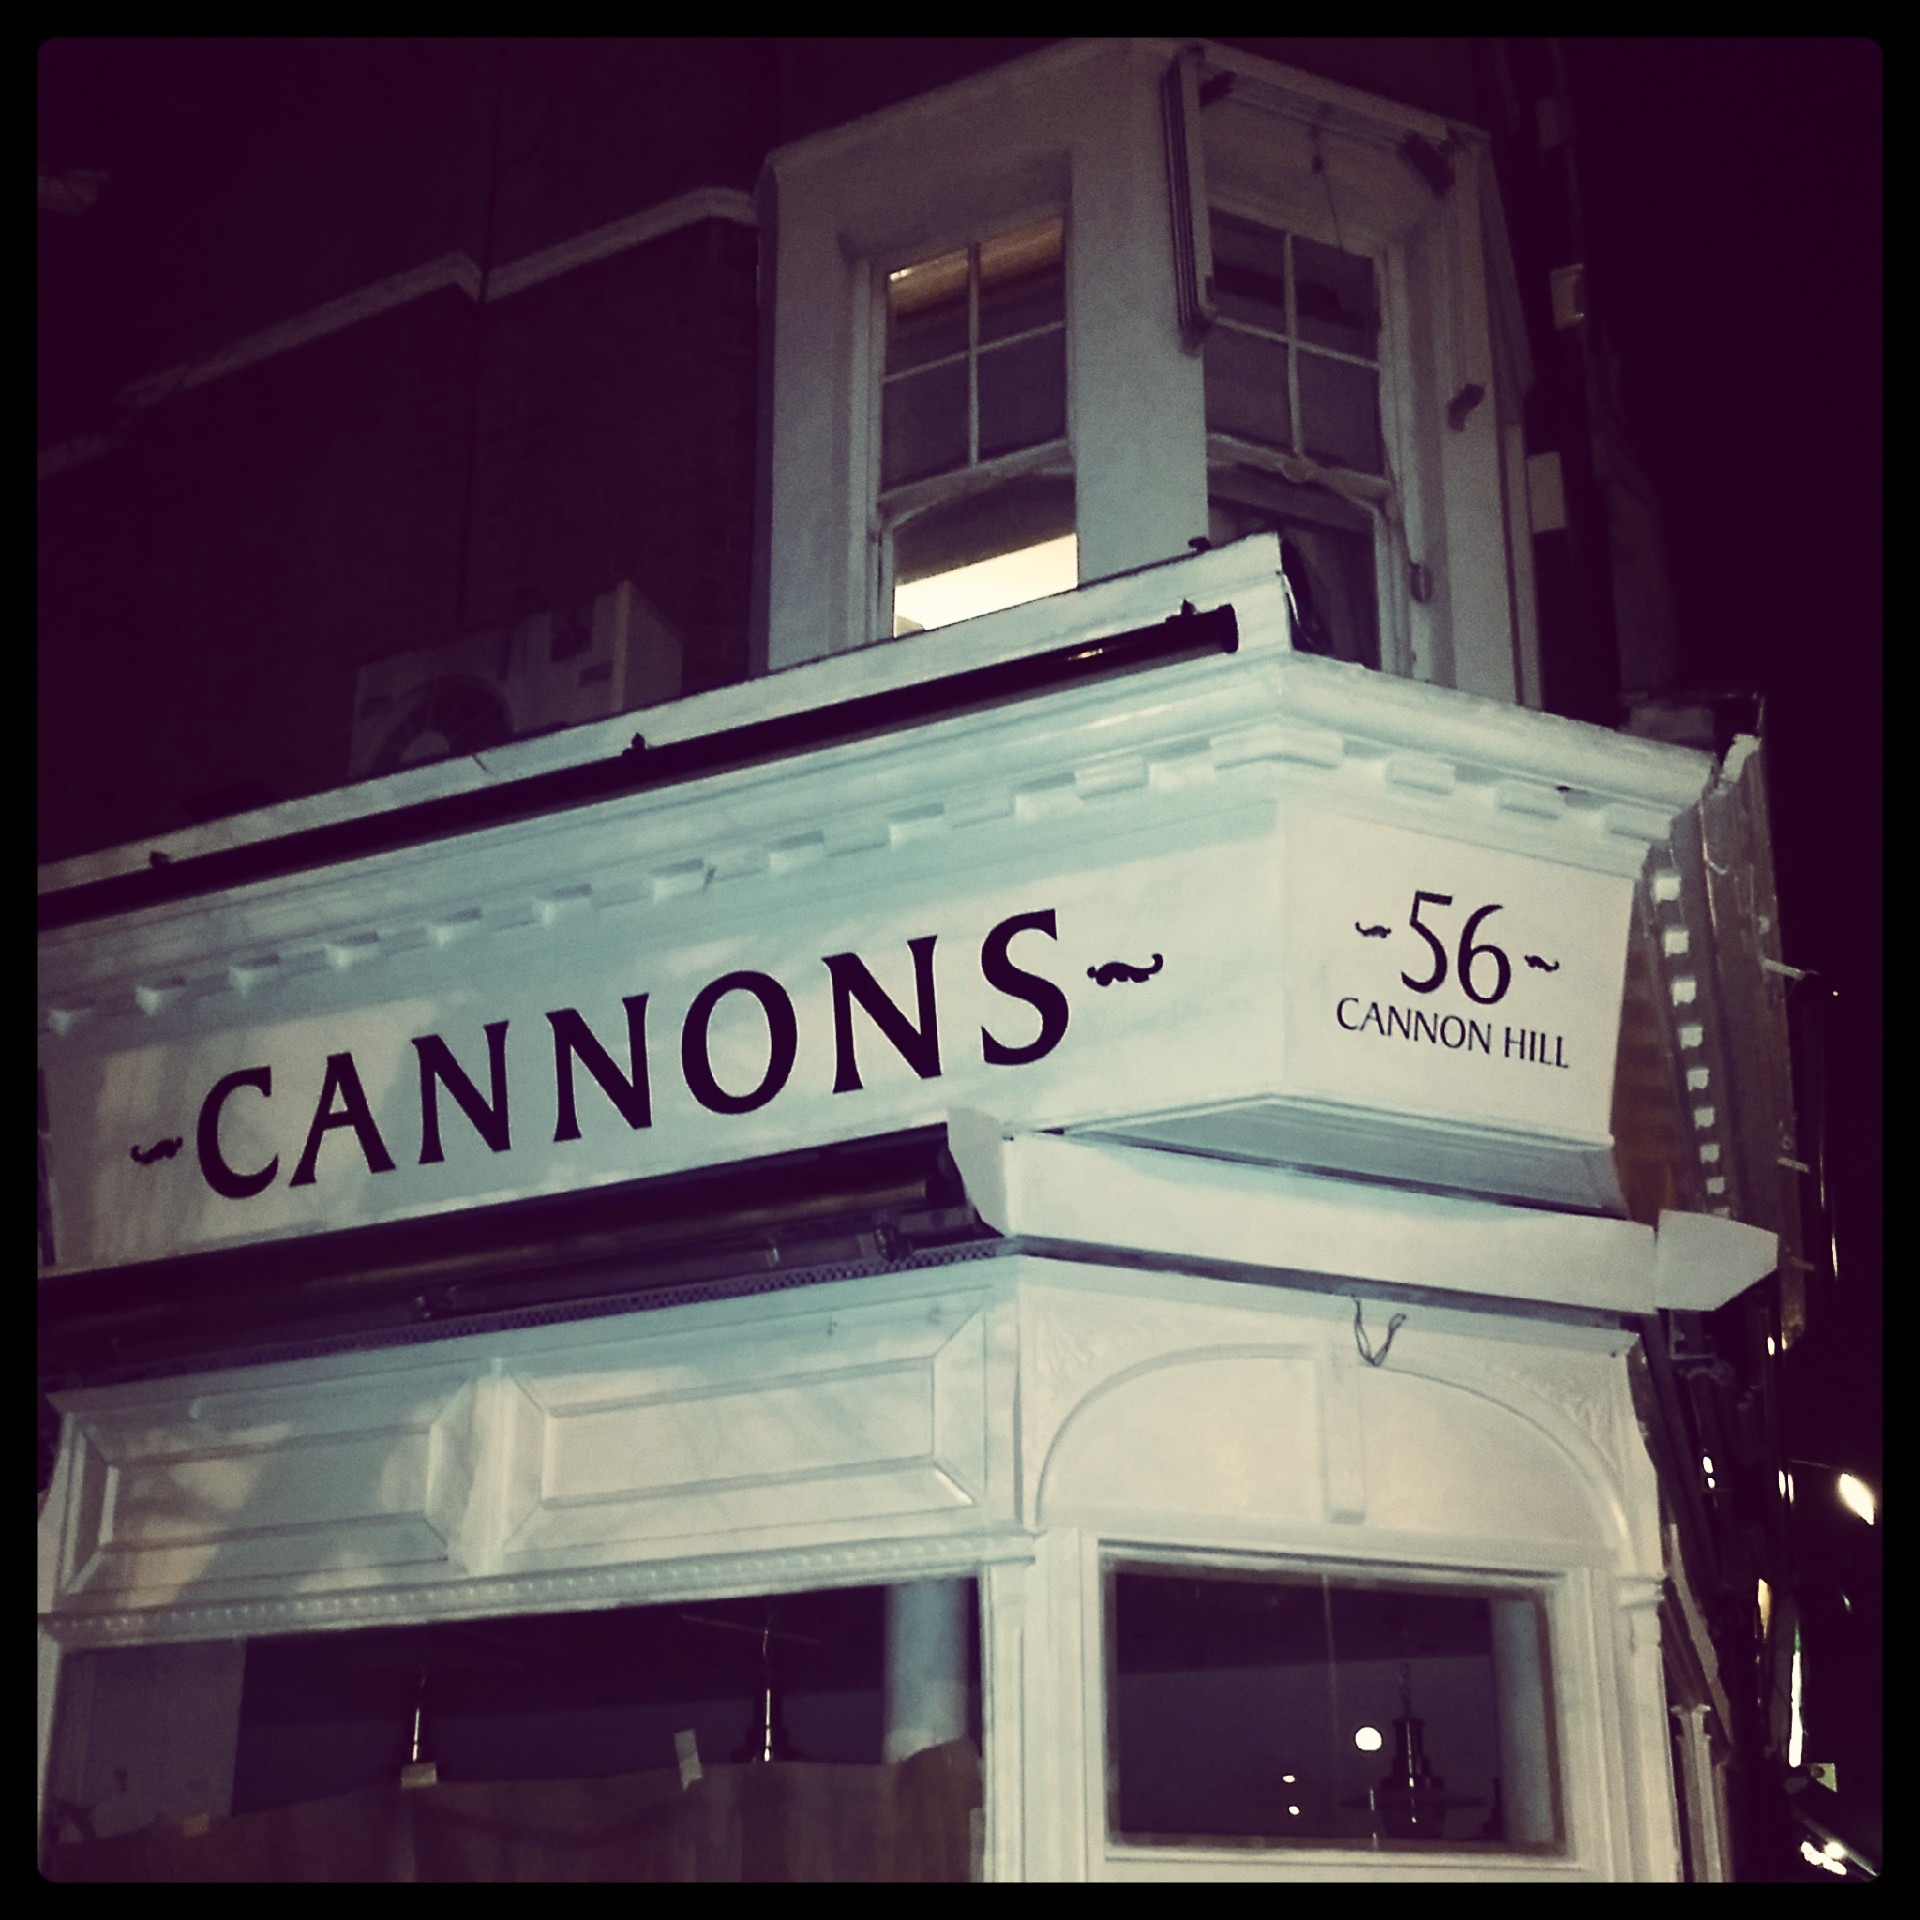 Cannons Fish & Chips